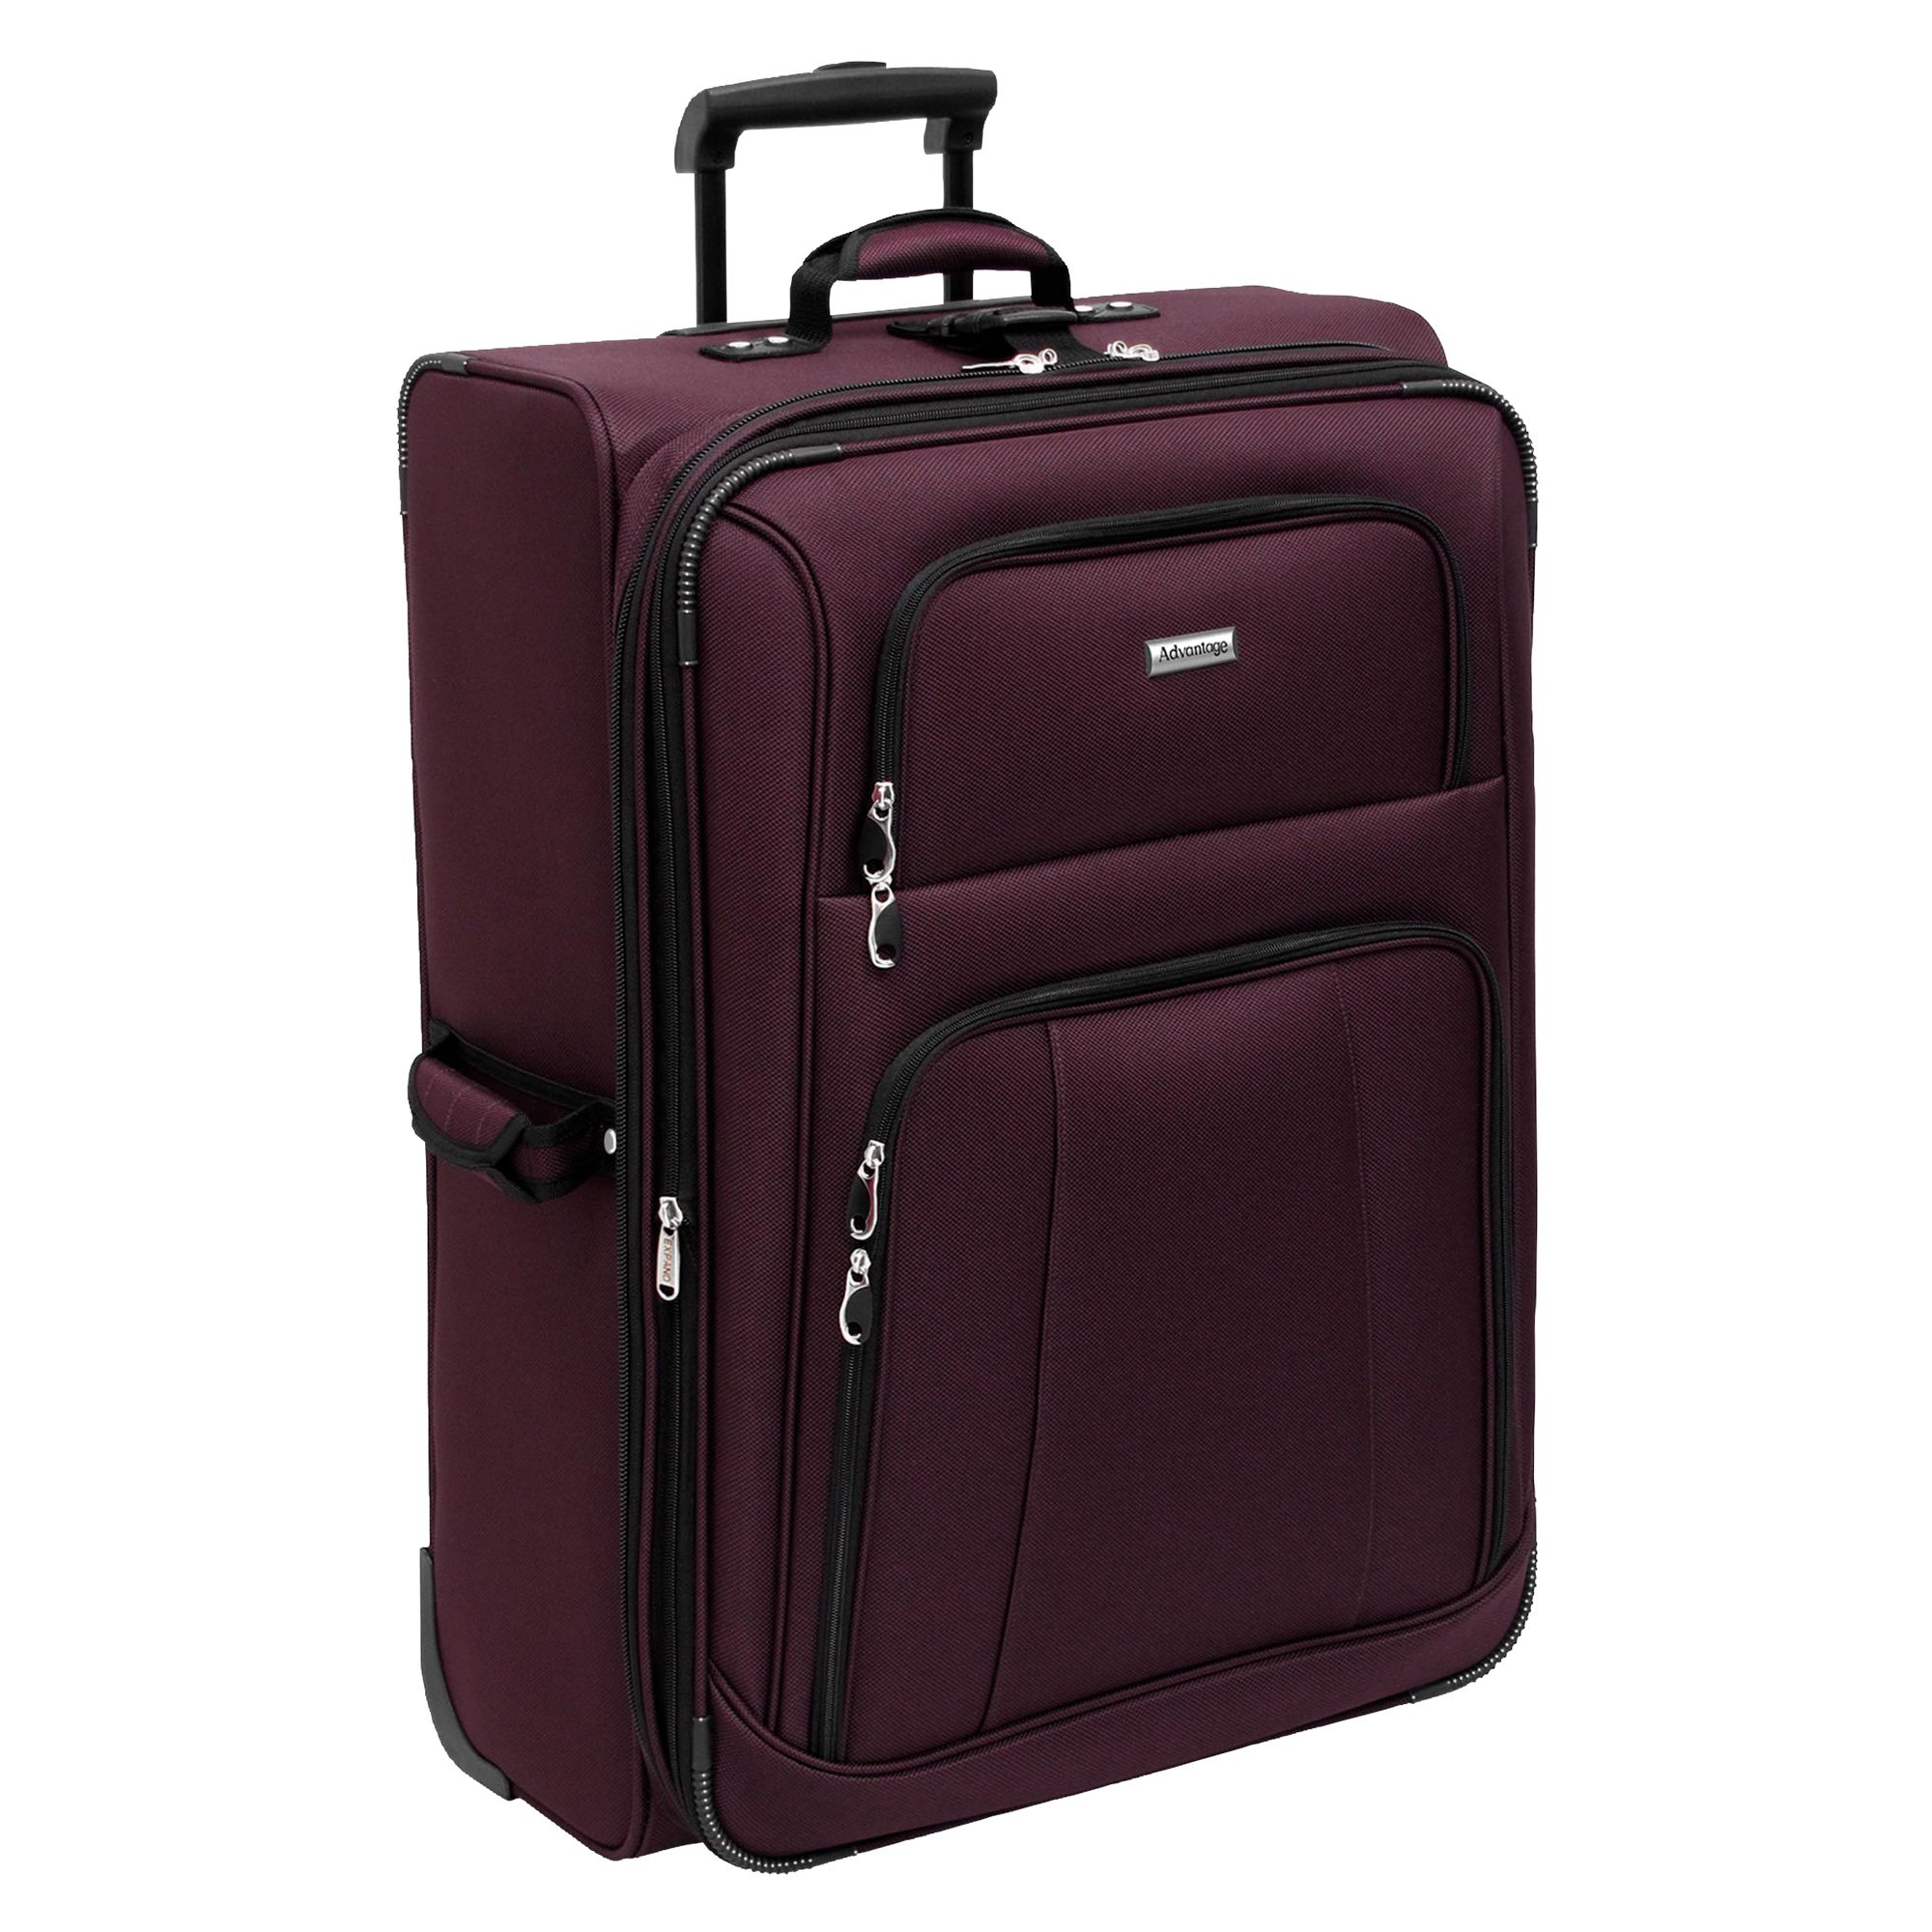 Travel Bag Kmart 28in Lightweight Upright Merlot Suitcase Travel In